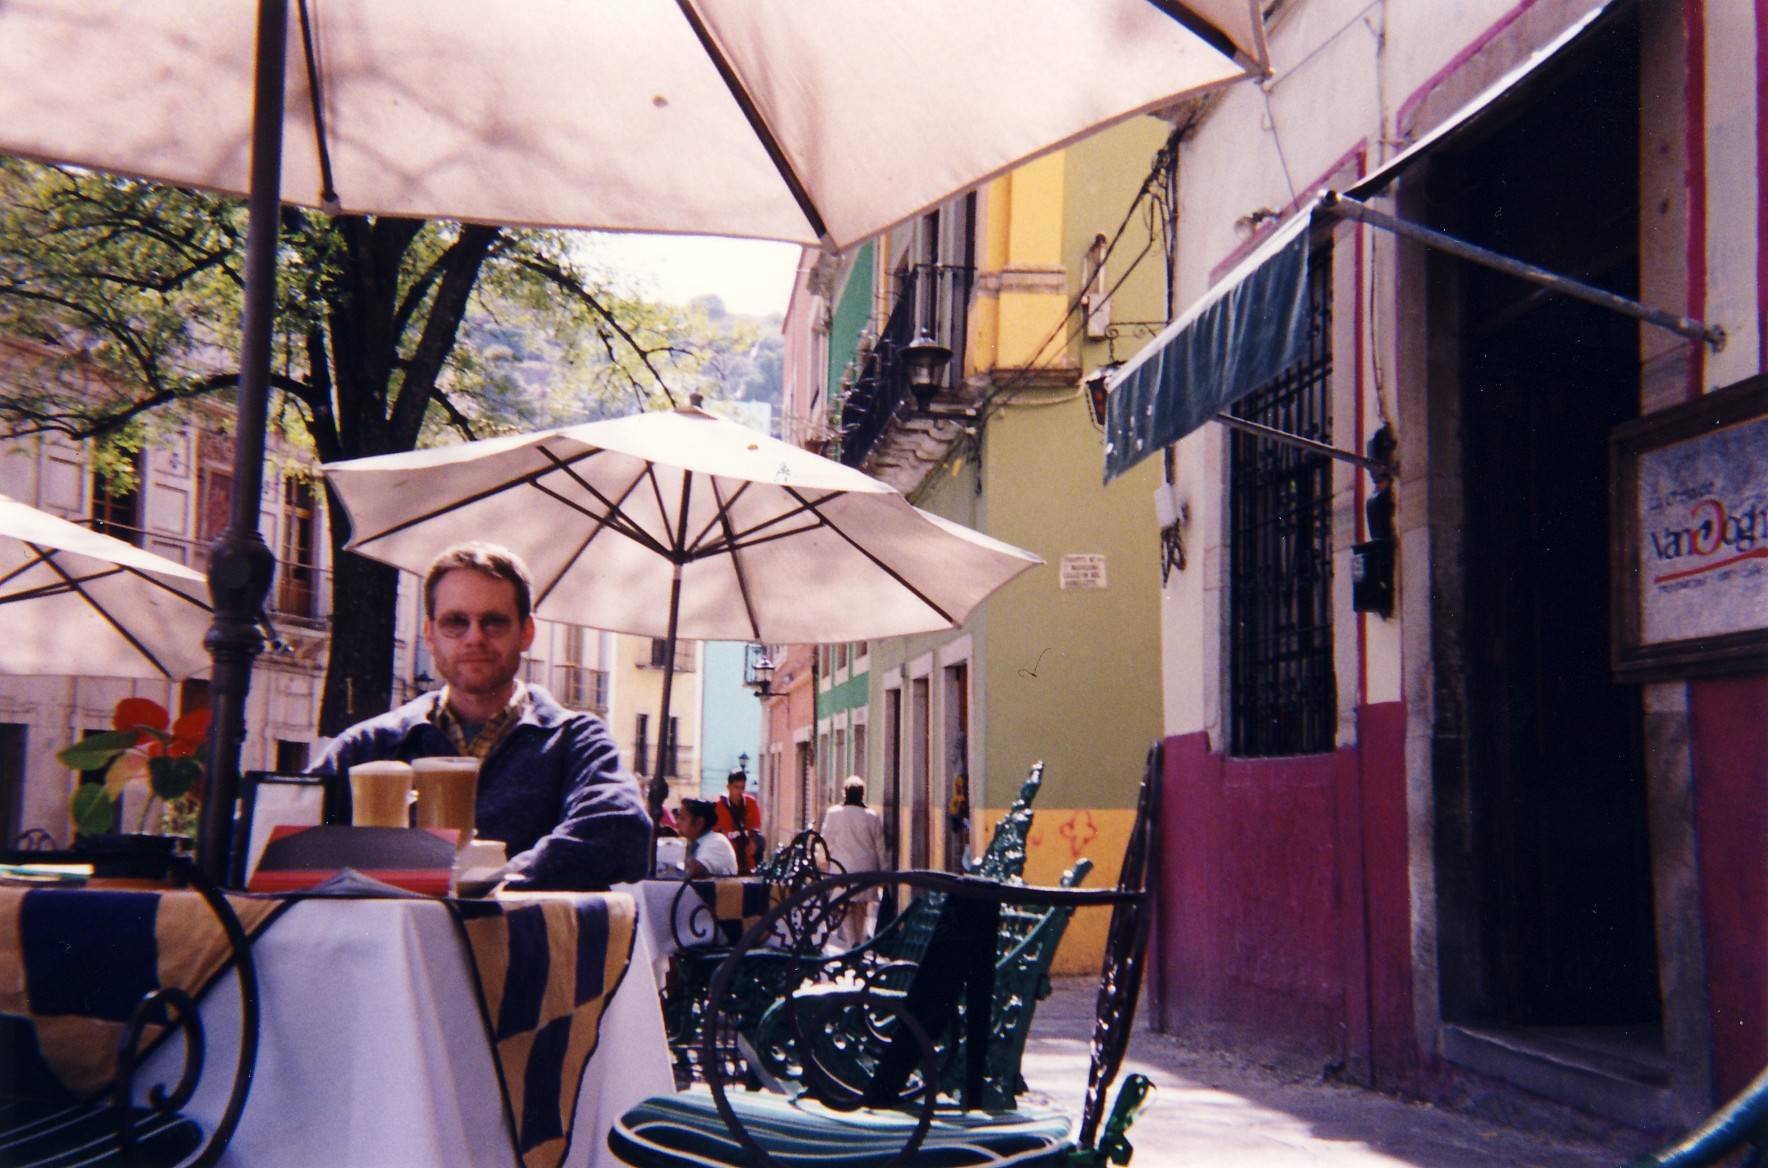 guan cafe outside rc.jpg